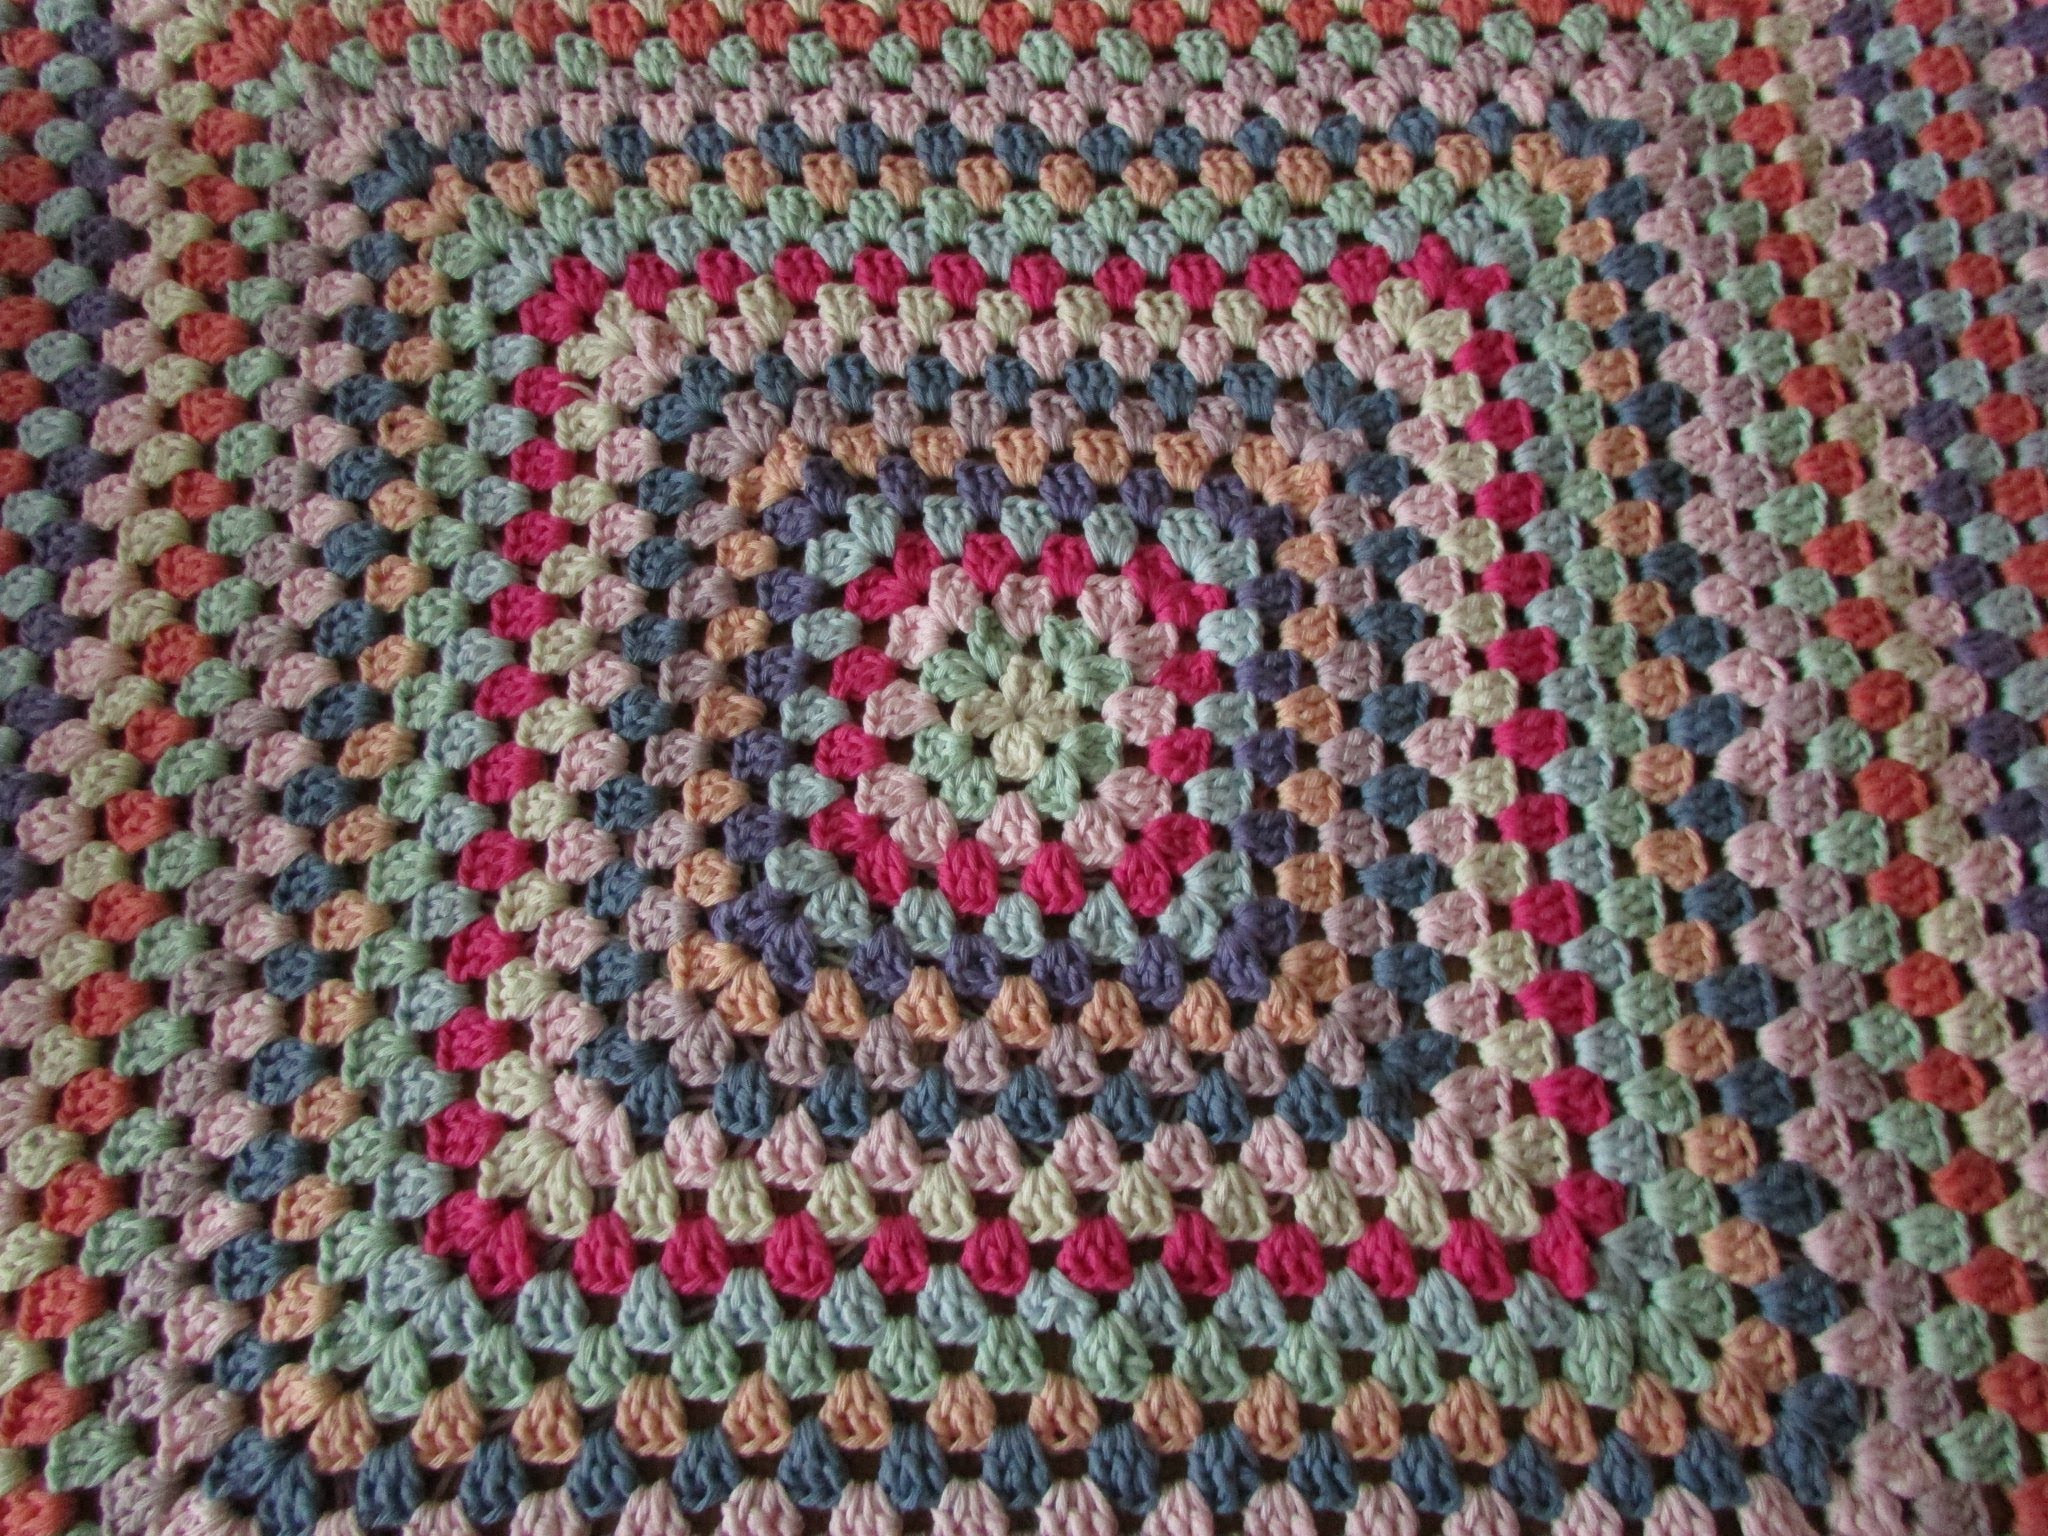 Crochet Granny Blanket Lovely Crochet for Beginners Archives Page 3 Of 4 Knit and Of Amazing 47 Ideas Crochet Granny Blanket